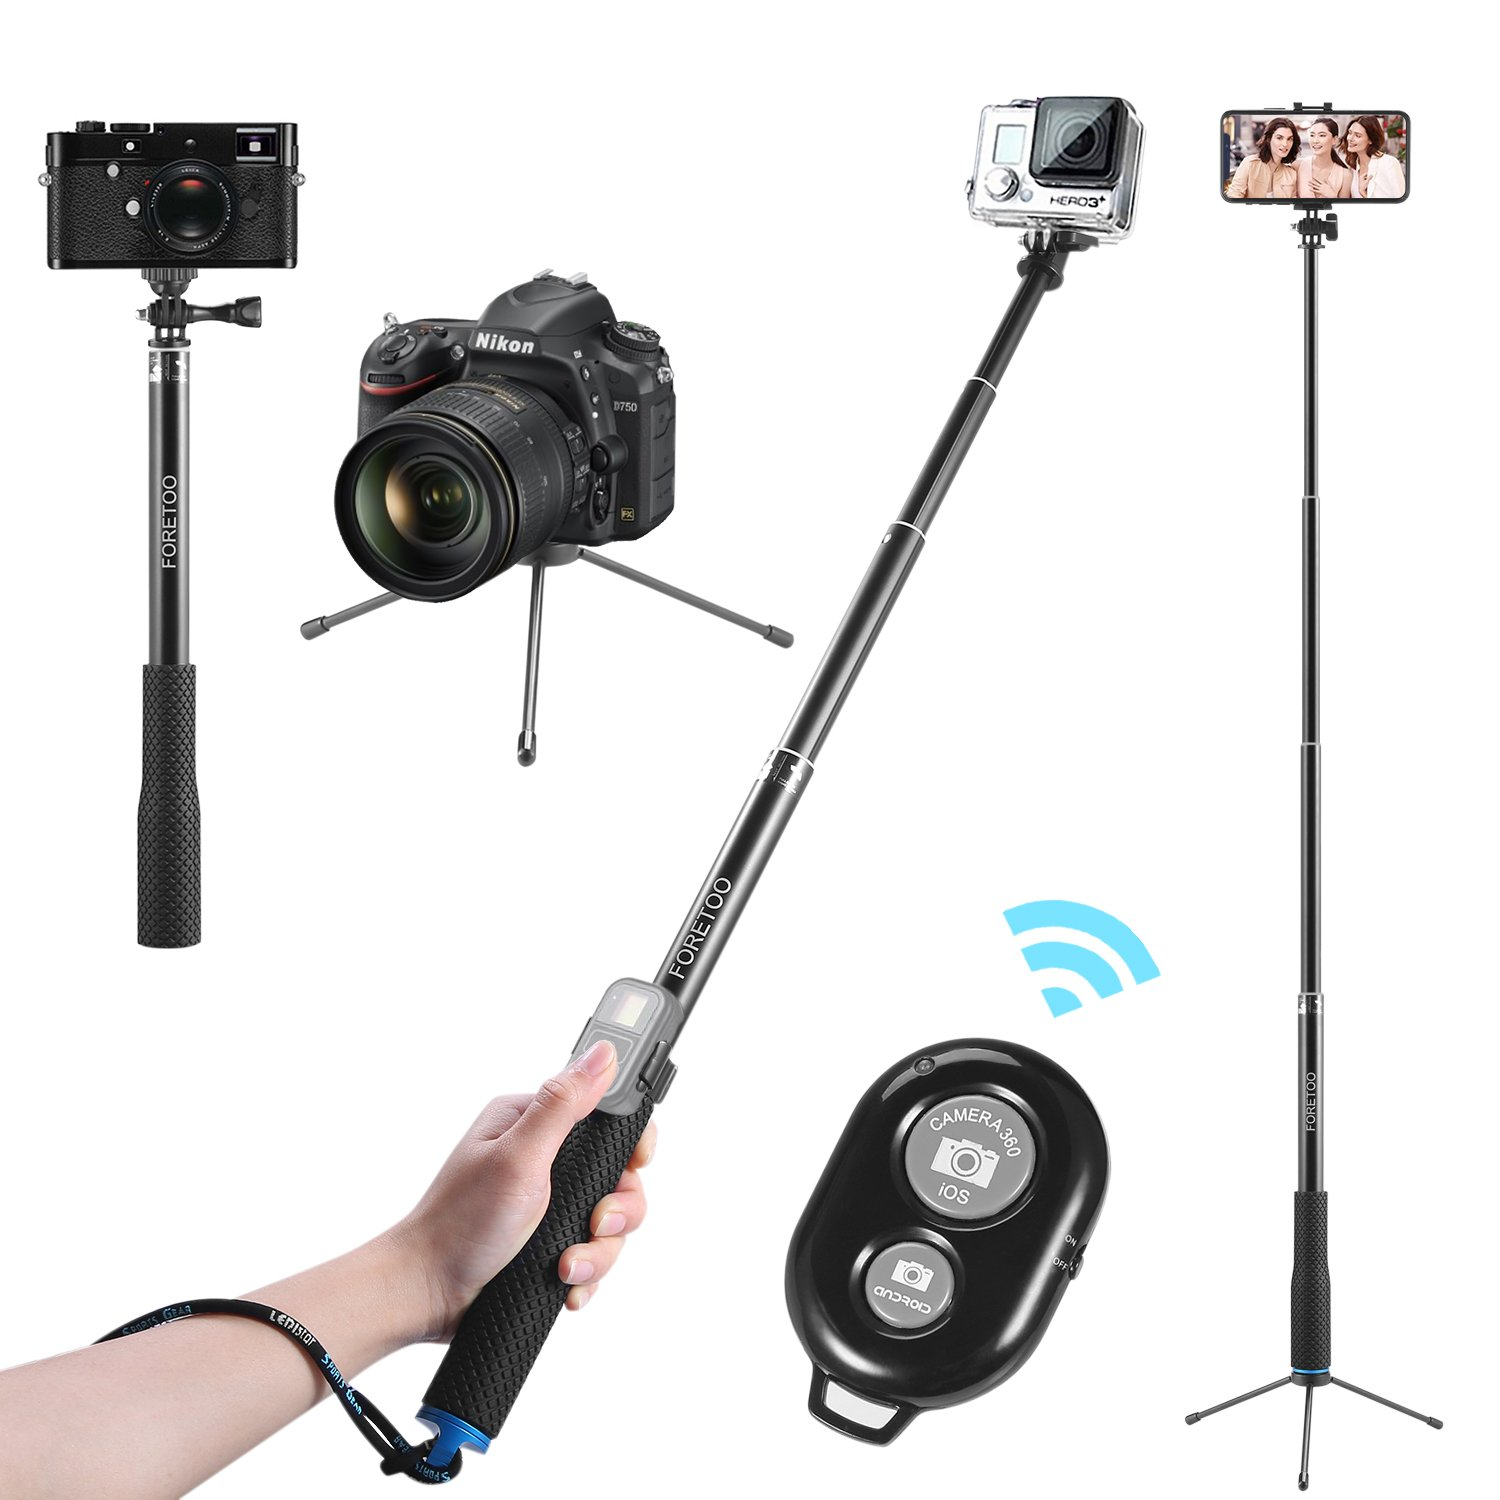 for Gopro Hero 6 5 4 3 Action Camera Accessories with Tripod Extension Pole gouduoduo2018 Hand Grip Extension Bracket